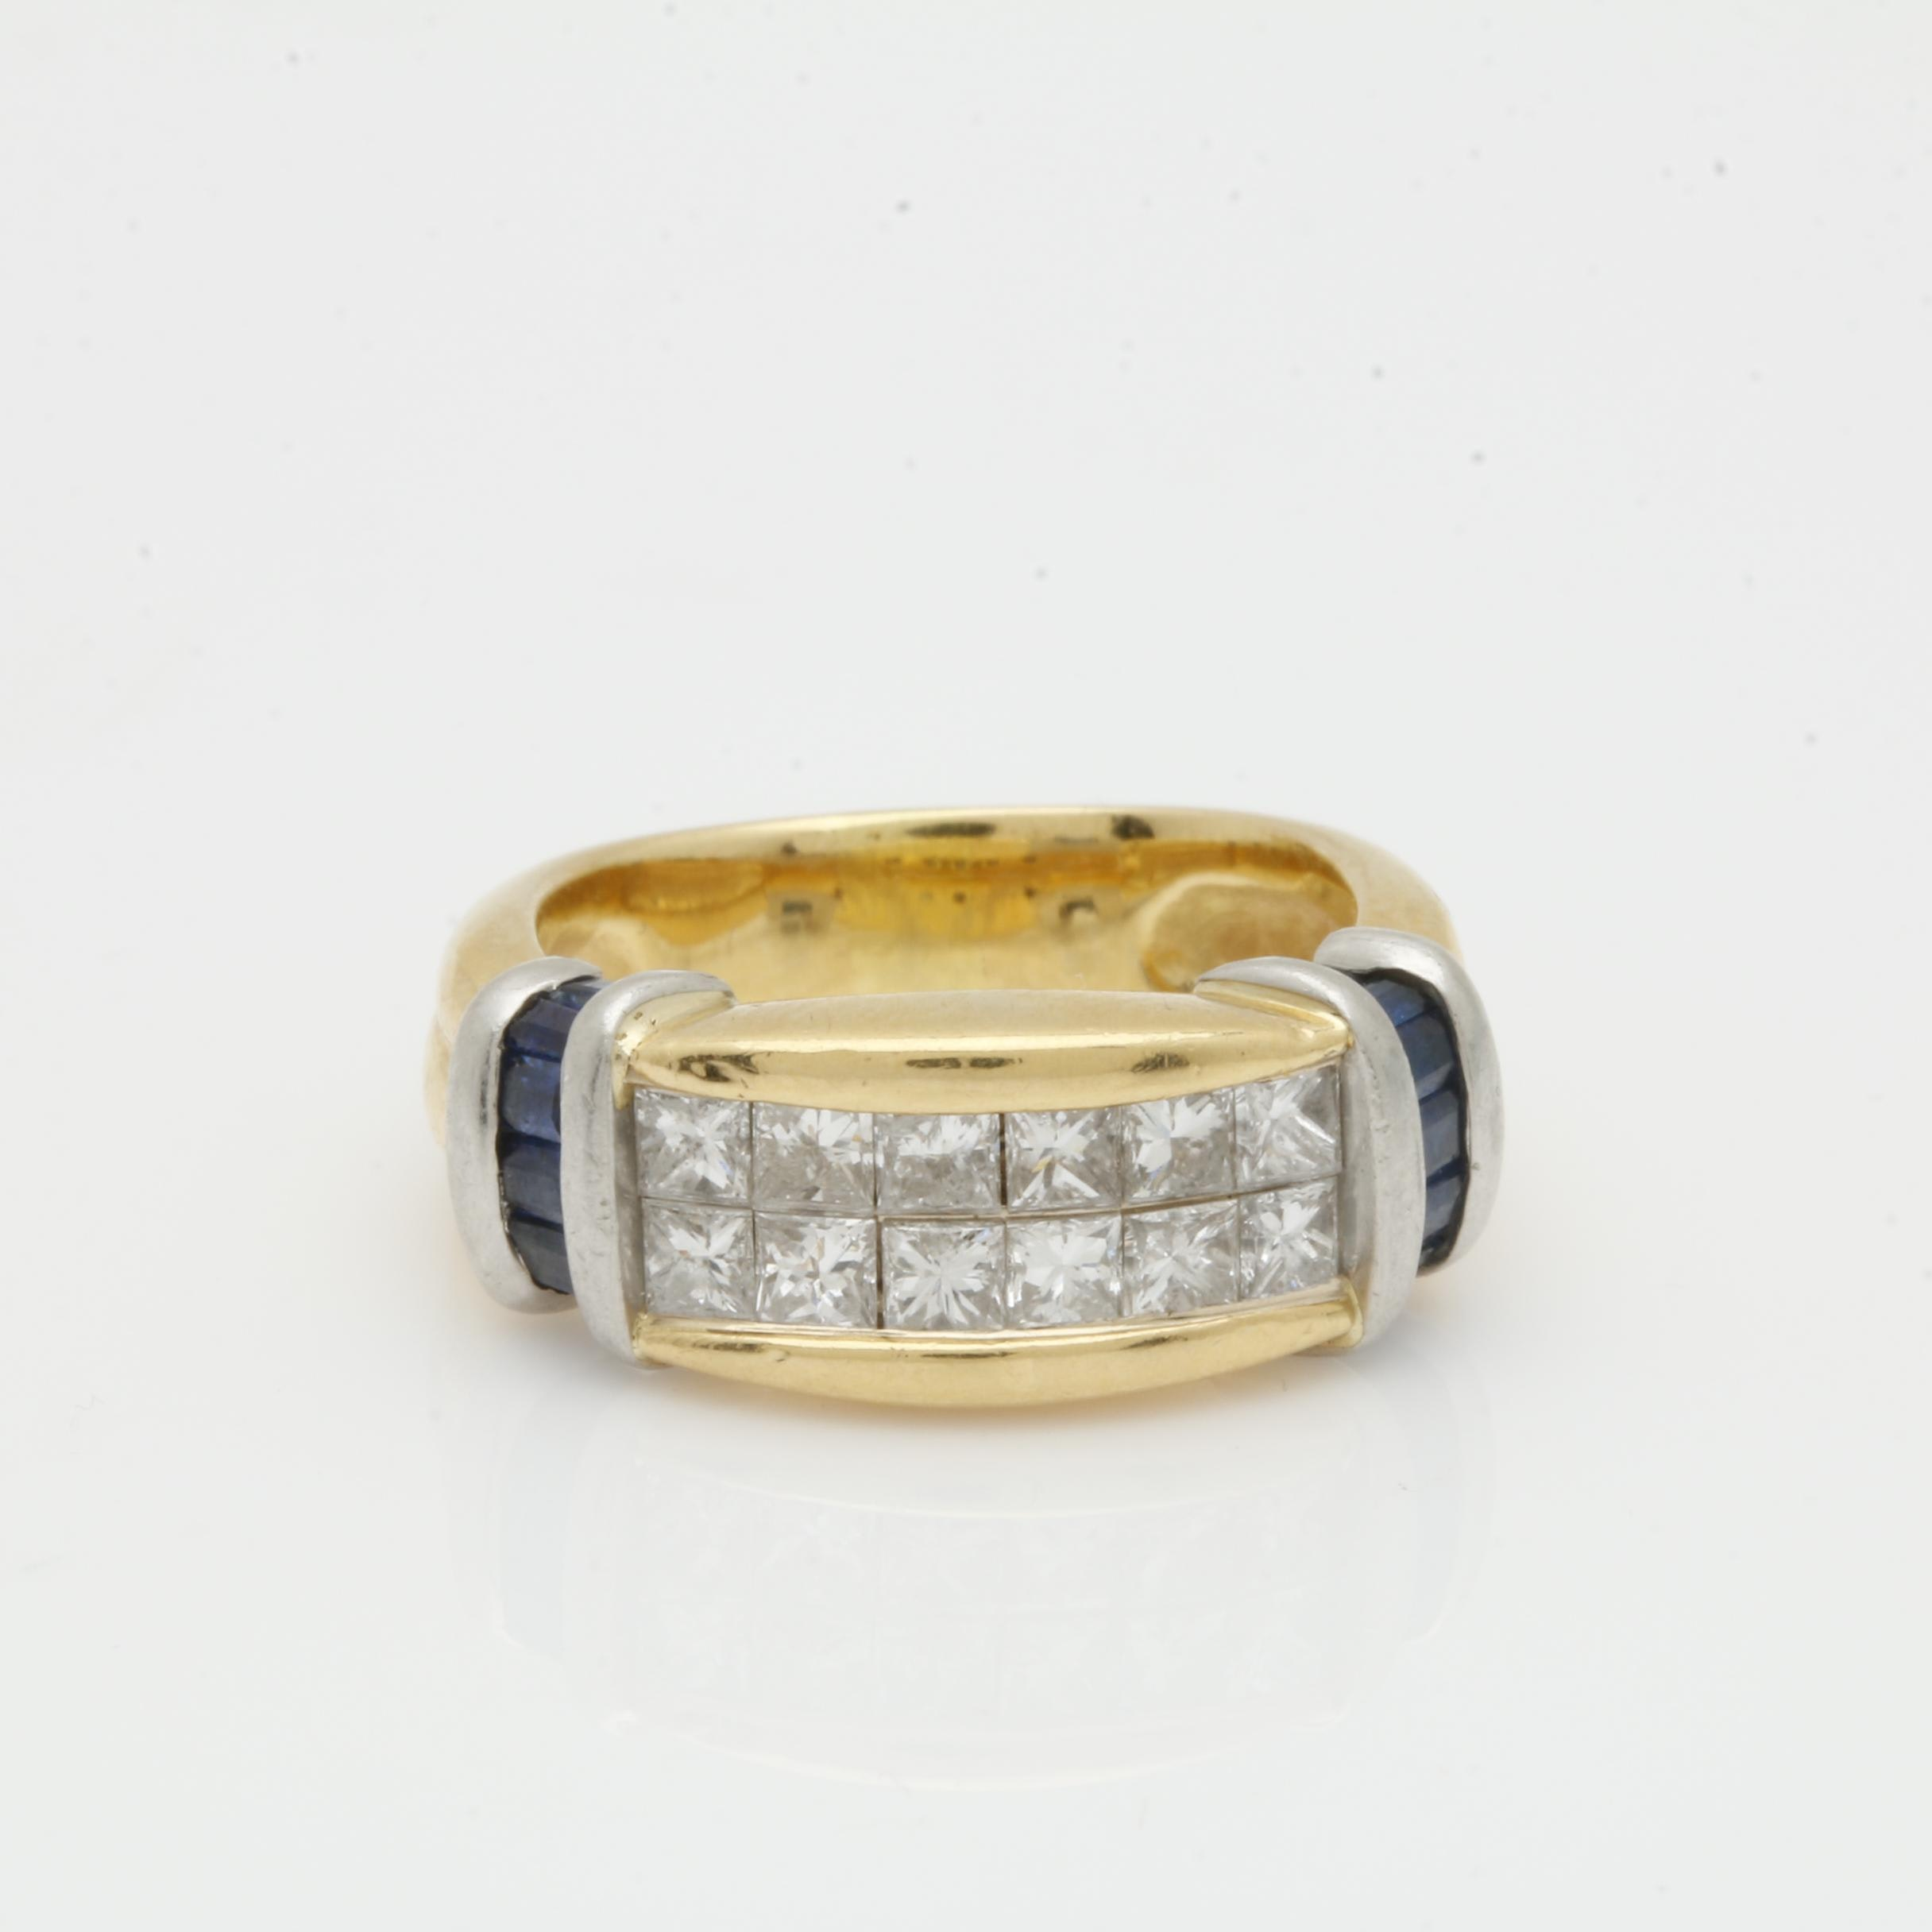 18K Yellow Gold and Platinum Diamond Ring with Sapphire Accents